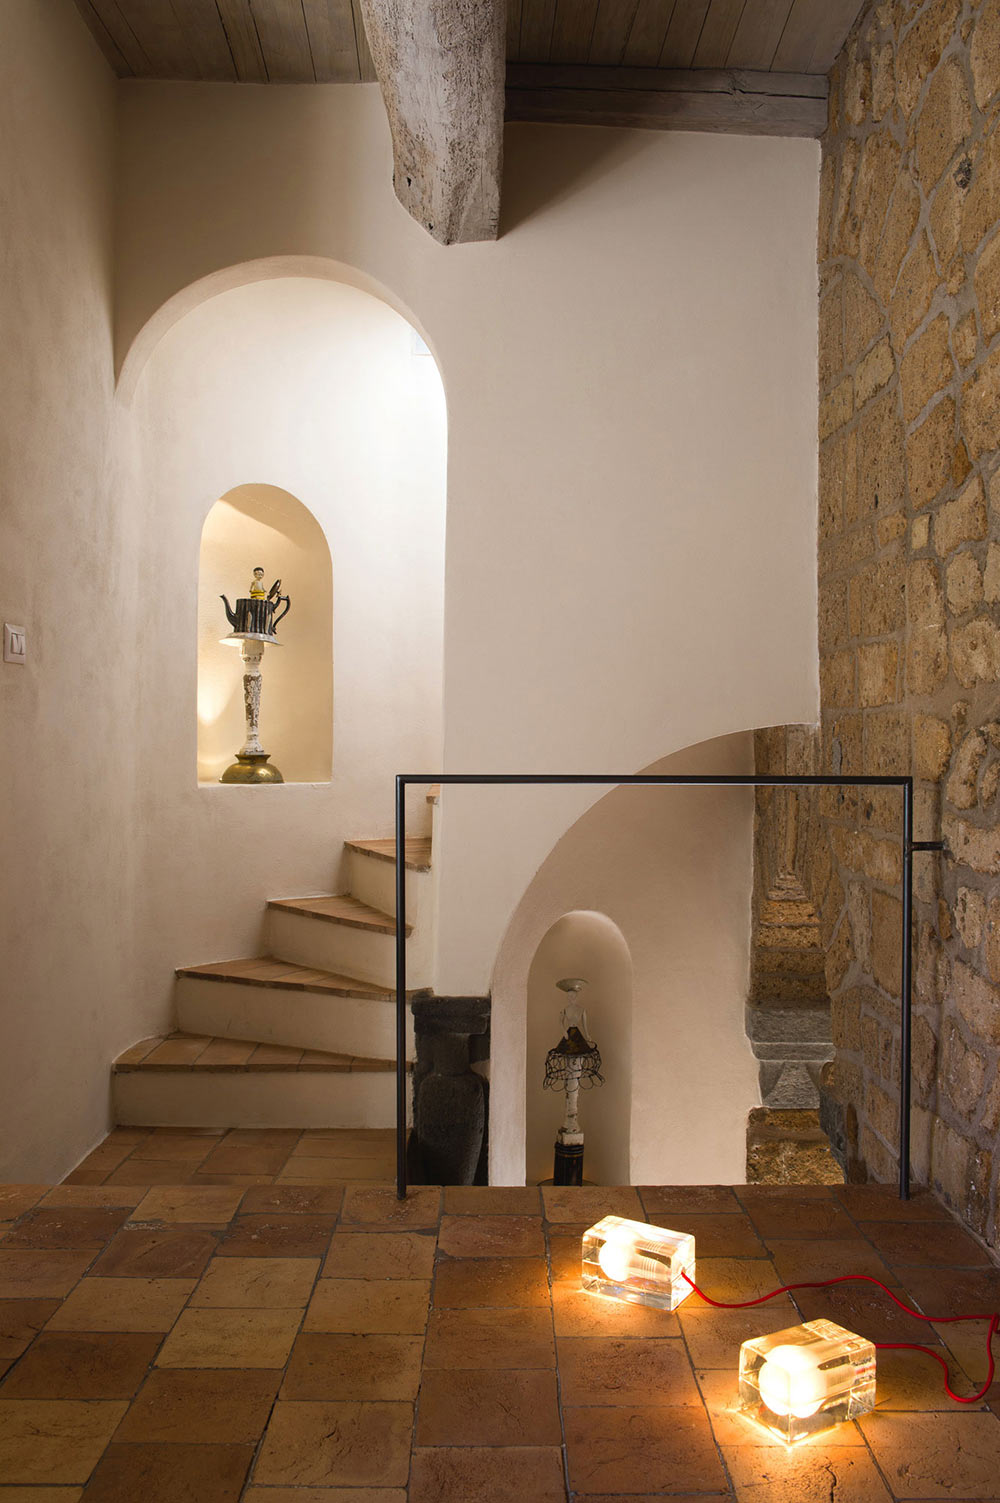 Stone Staircase, Beams, Stunning Renovation in Civita di Bagnoregio by Studio F